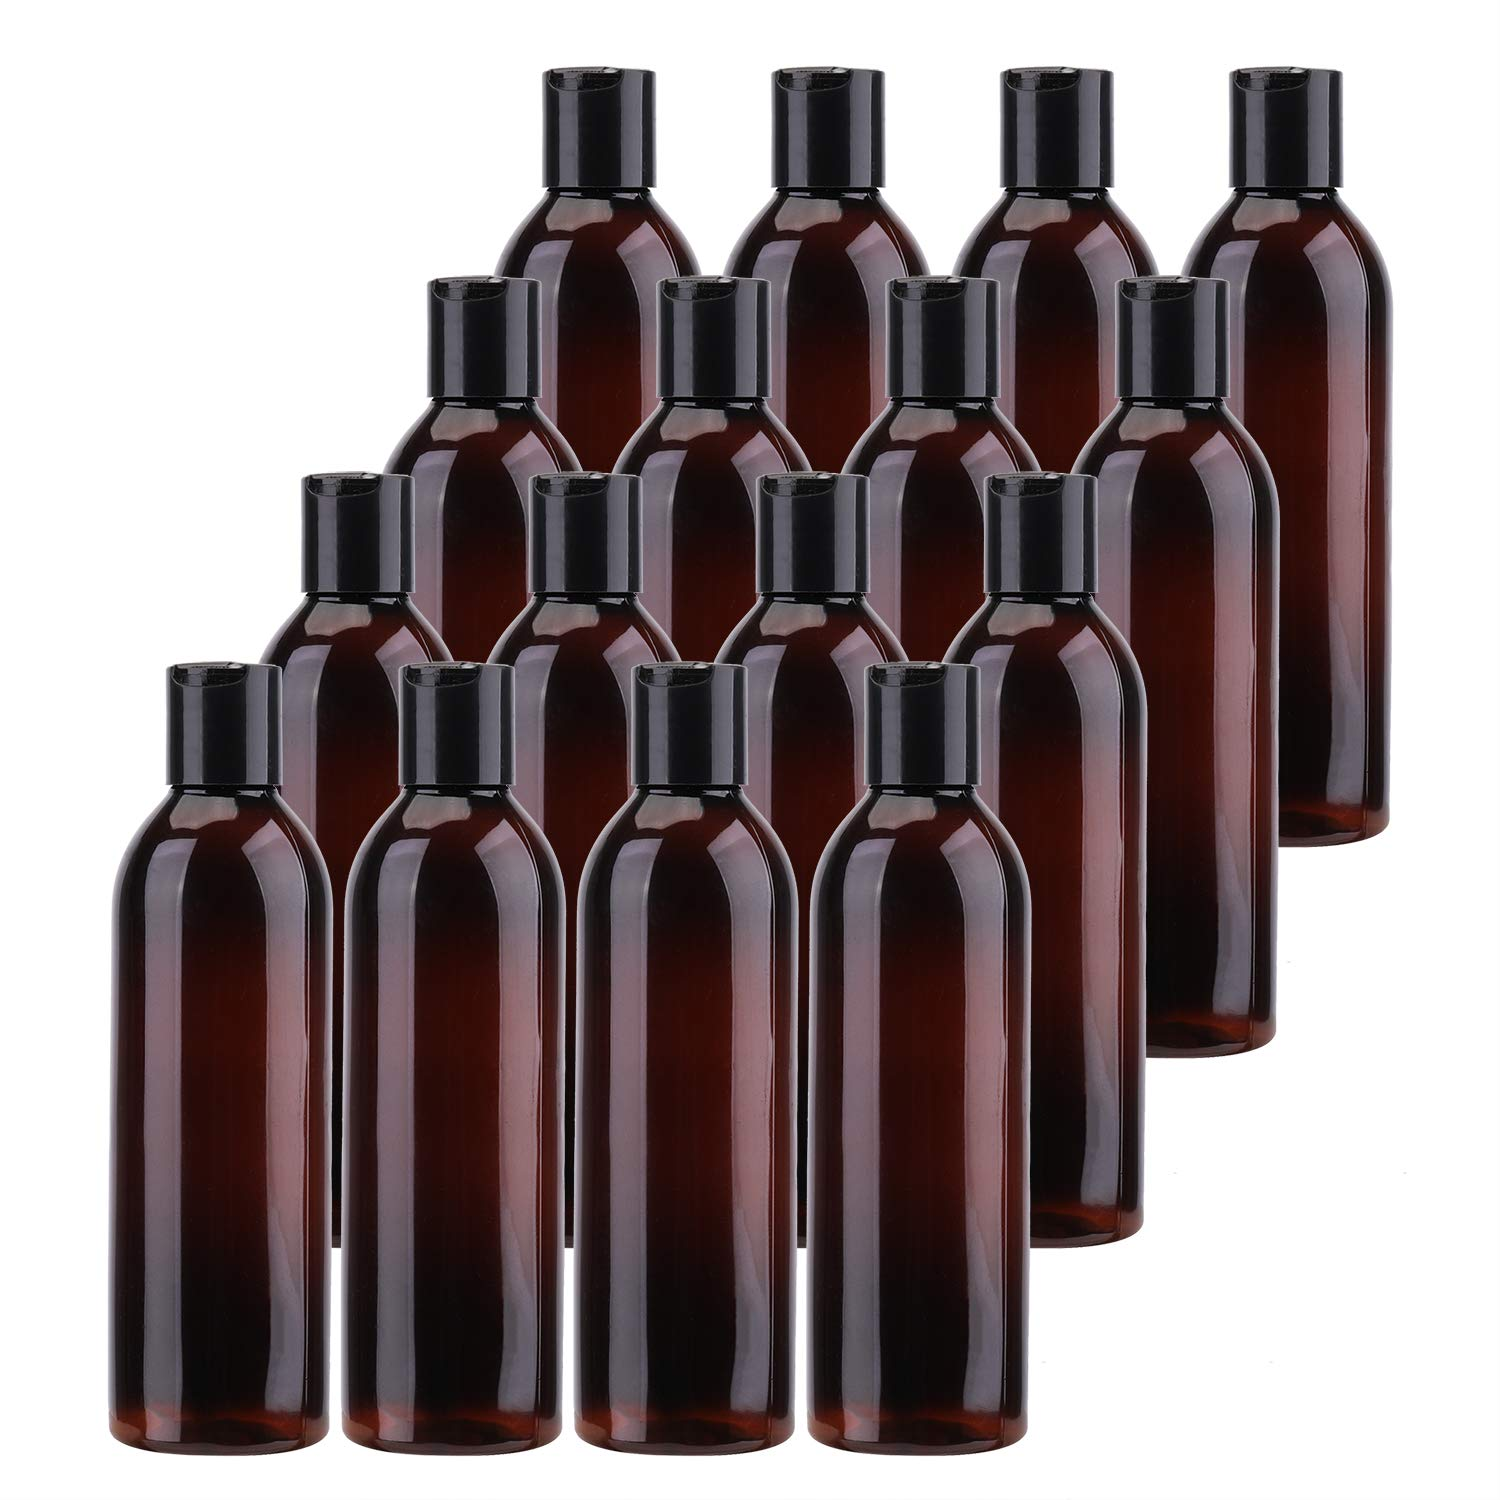 Bekith 16 Pack 8 ounce Amber Empty Plastic Bottles with Disc Top Flip Cap; BPA-Free Refillable Containers For Shampoo, Lotions, Liquid Body Soap, Creams